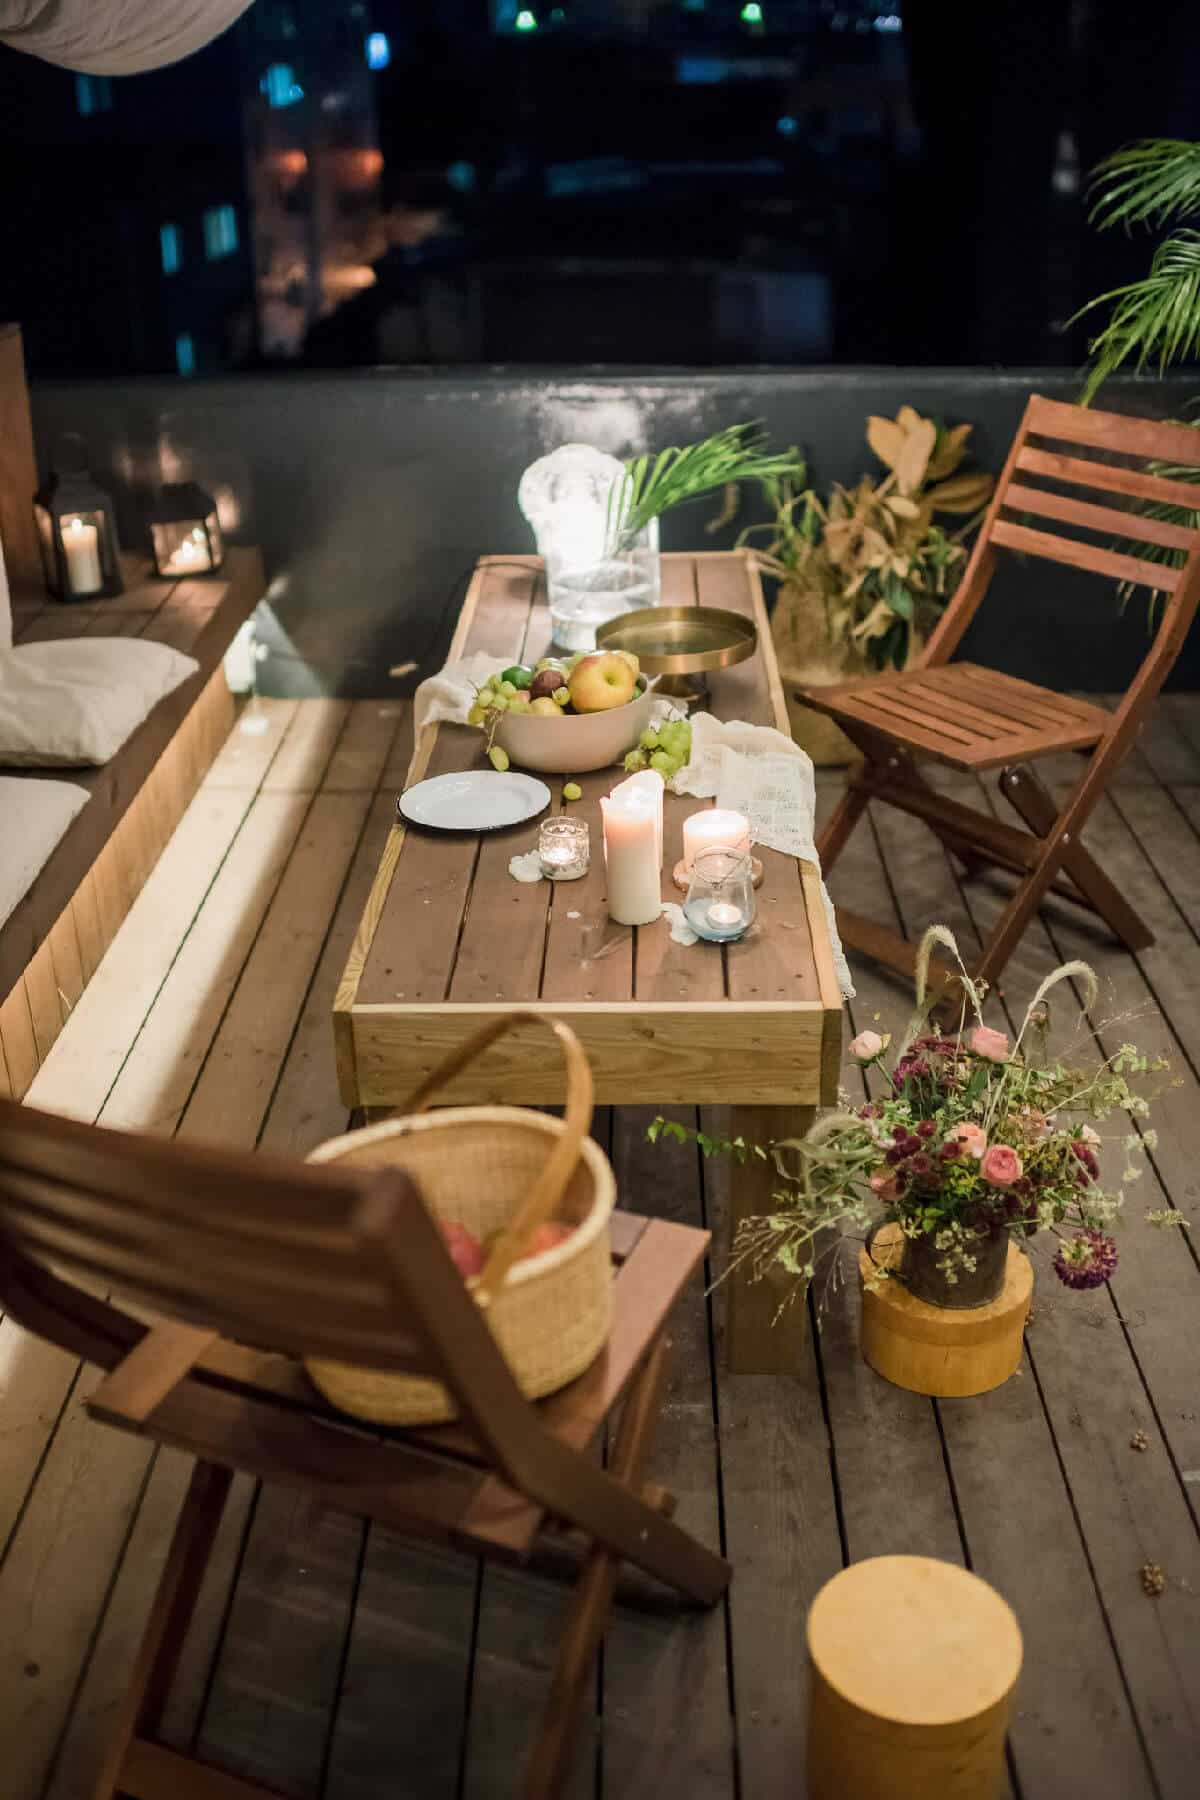 Wooden Folding Chairs on the Deck